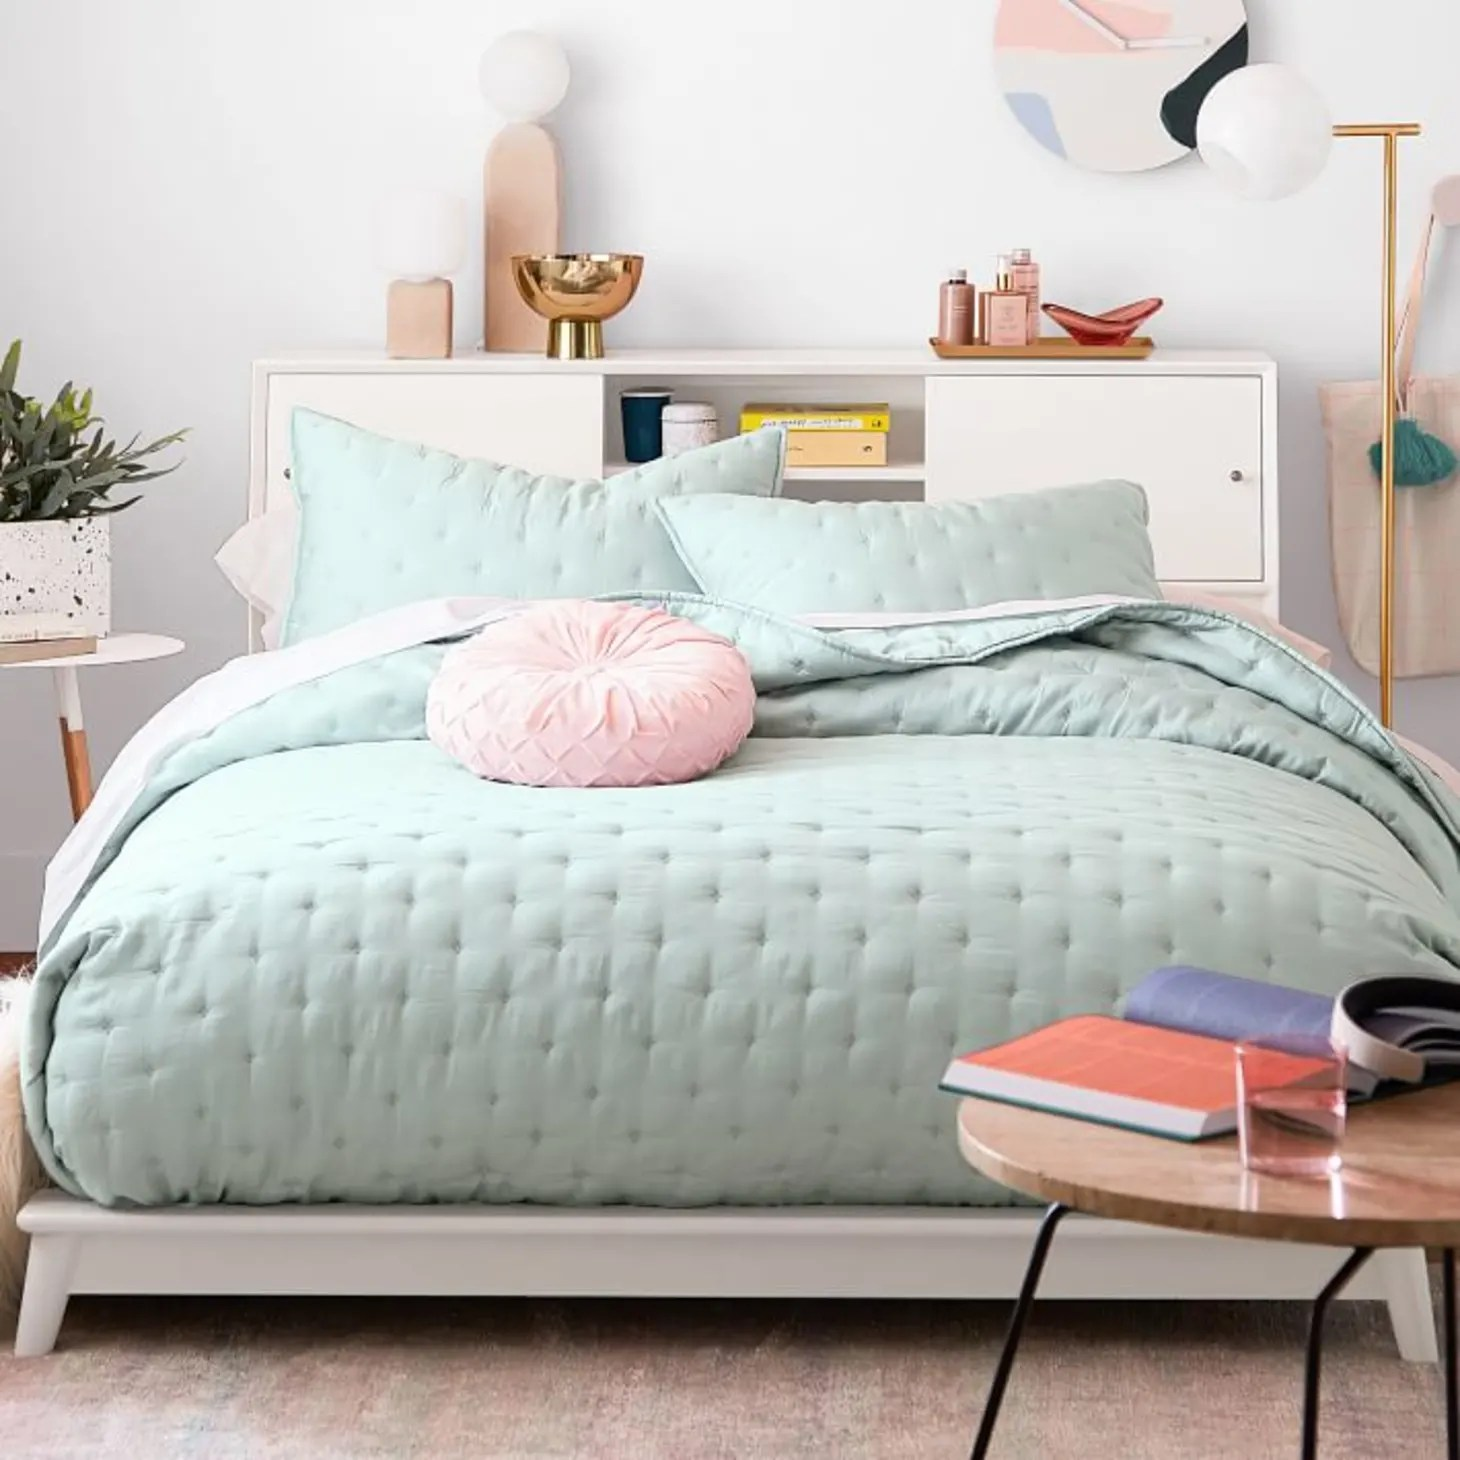 West Elm X Pbteen Collection Is Modern And Perfect For Small